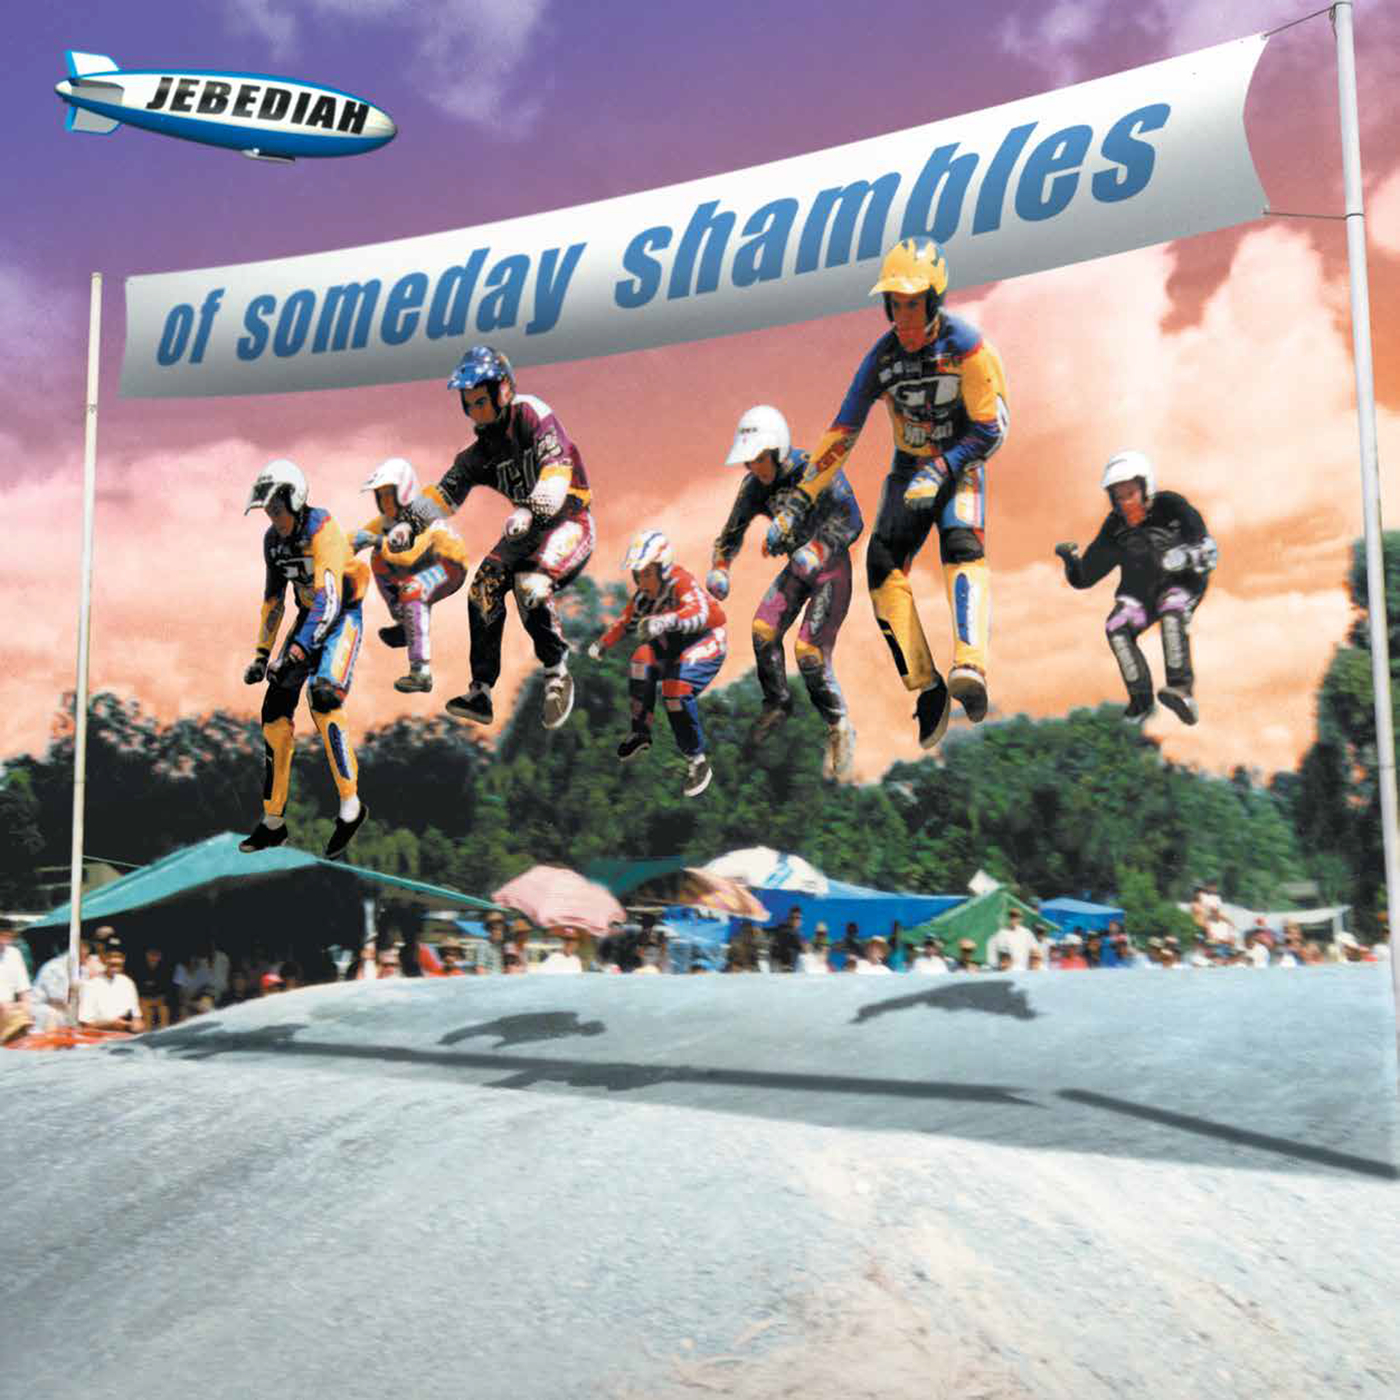 Of Someday Shambles - Jebediah